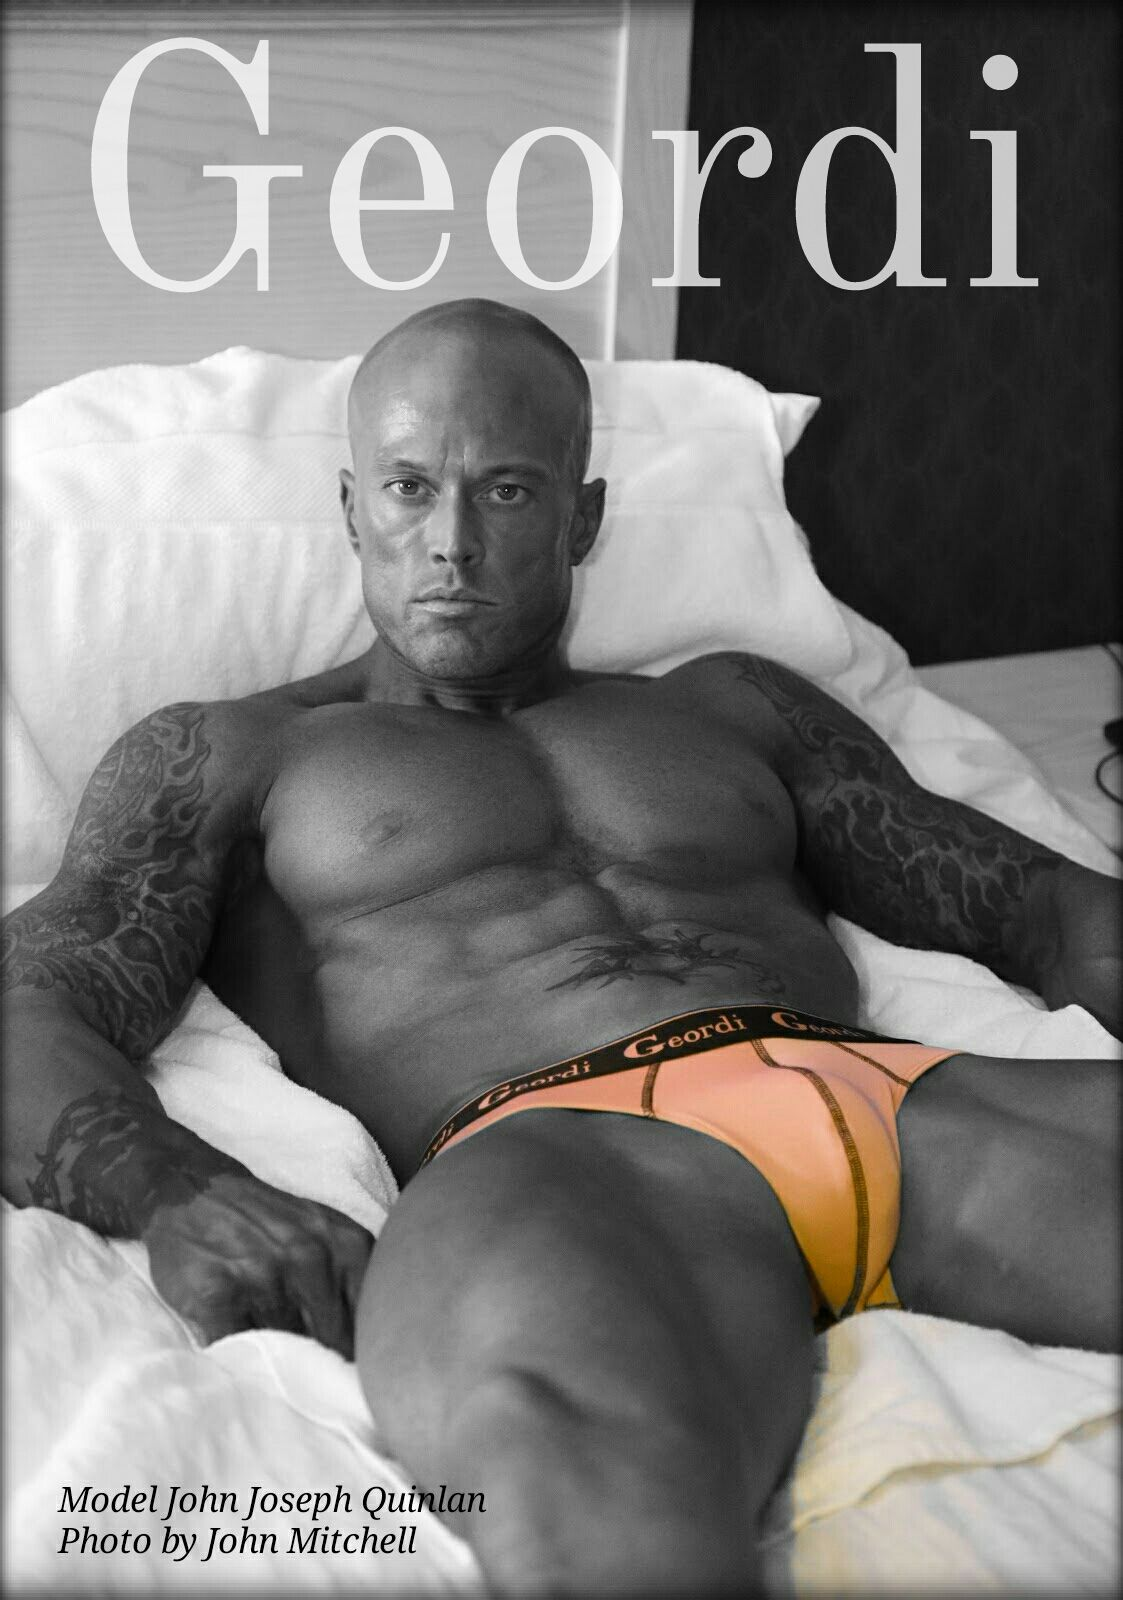 Romance Physique Underwear Model & Actor John Joseph Quinlan in Geordi #JohnQuinlan